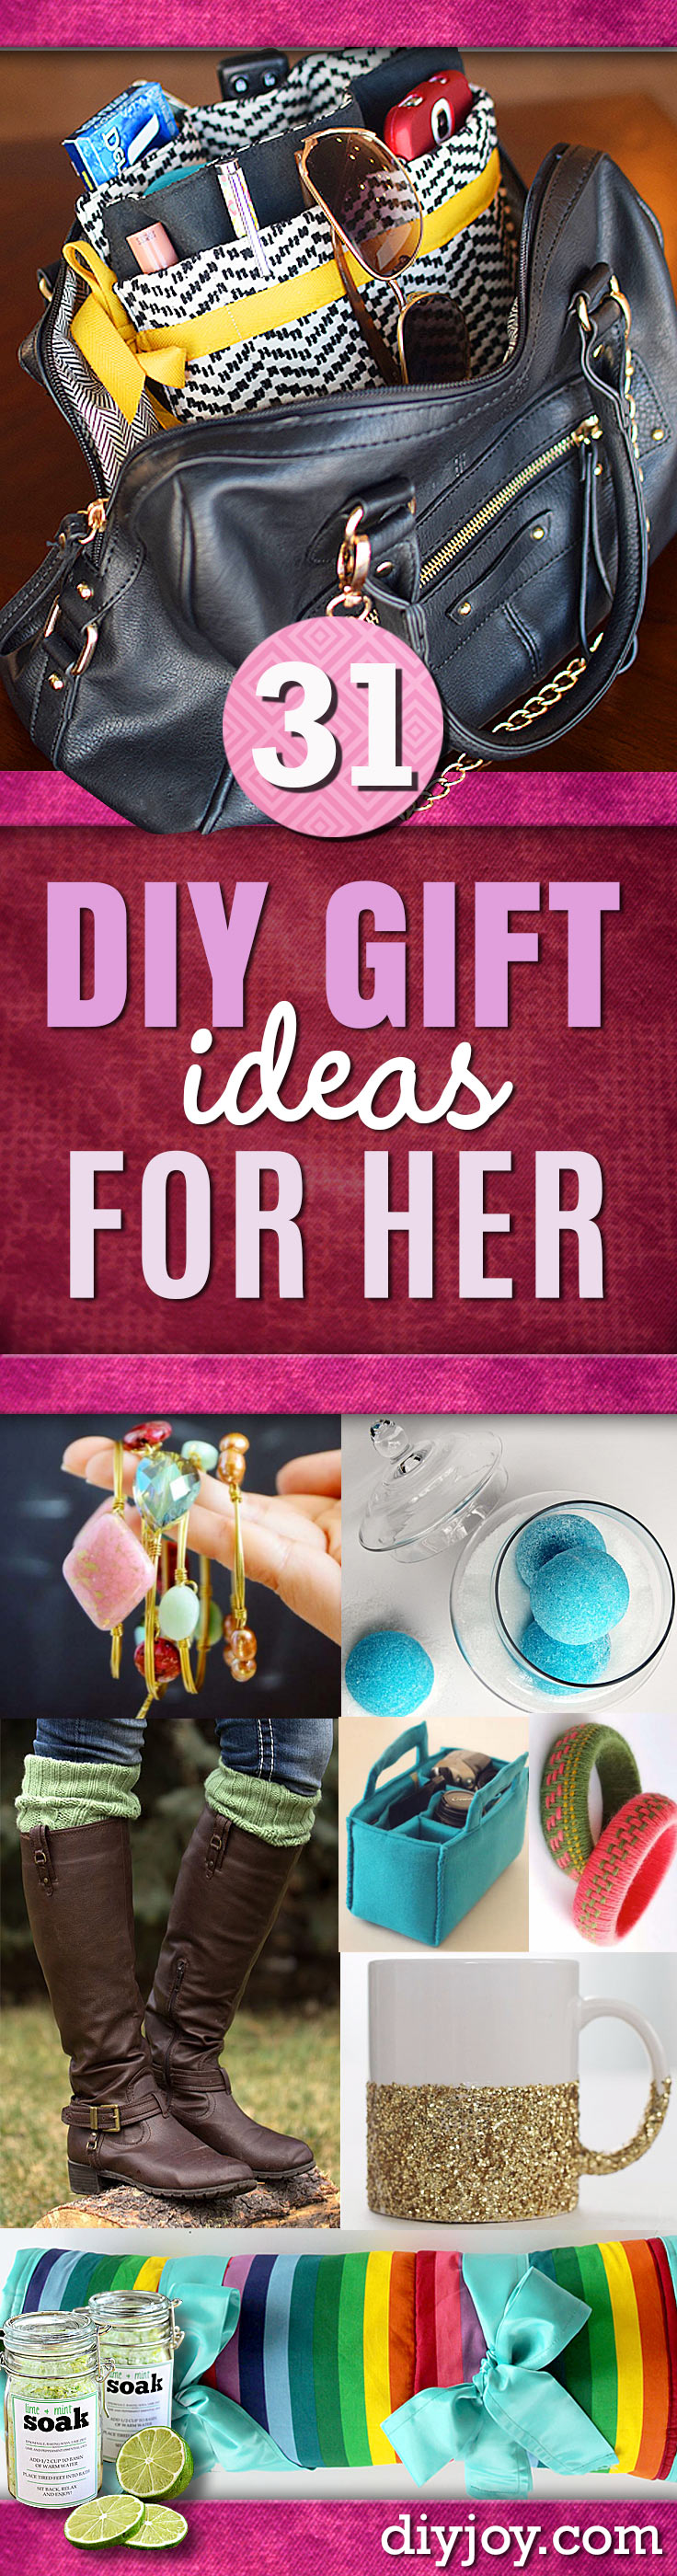 Super special diy gift ideas for her diy gifts for her perfect homemade gift ideas for girlfriend mom sister aunt negle Gallery